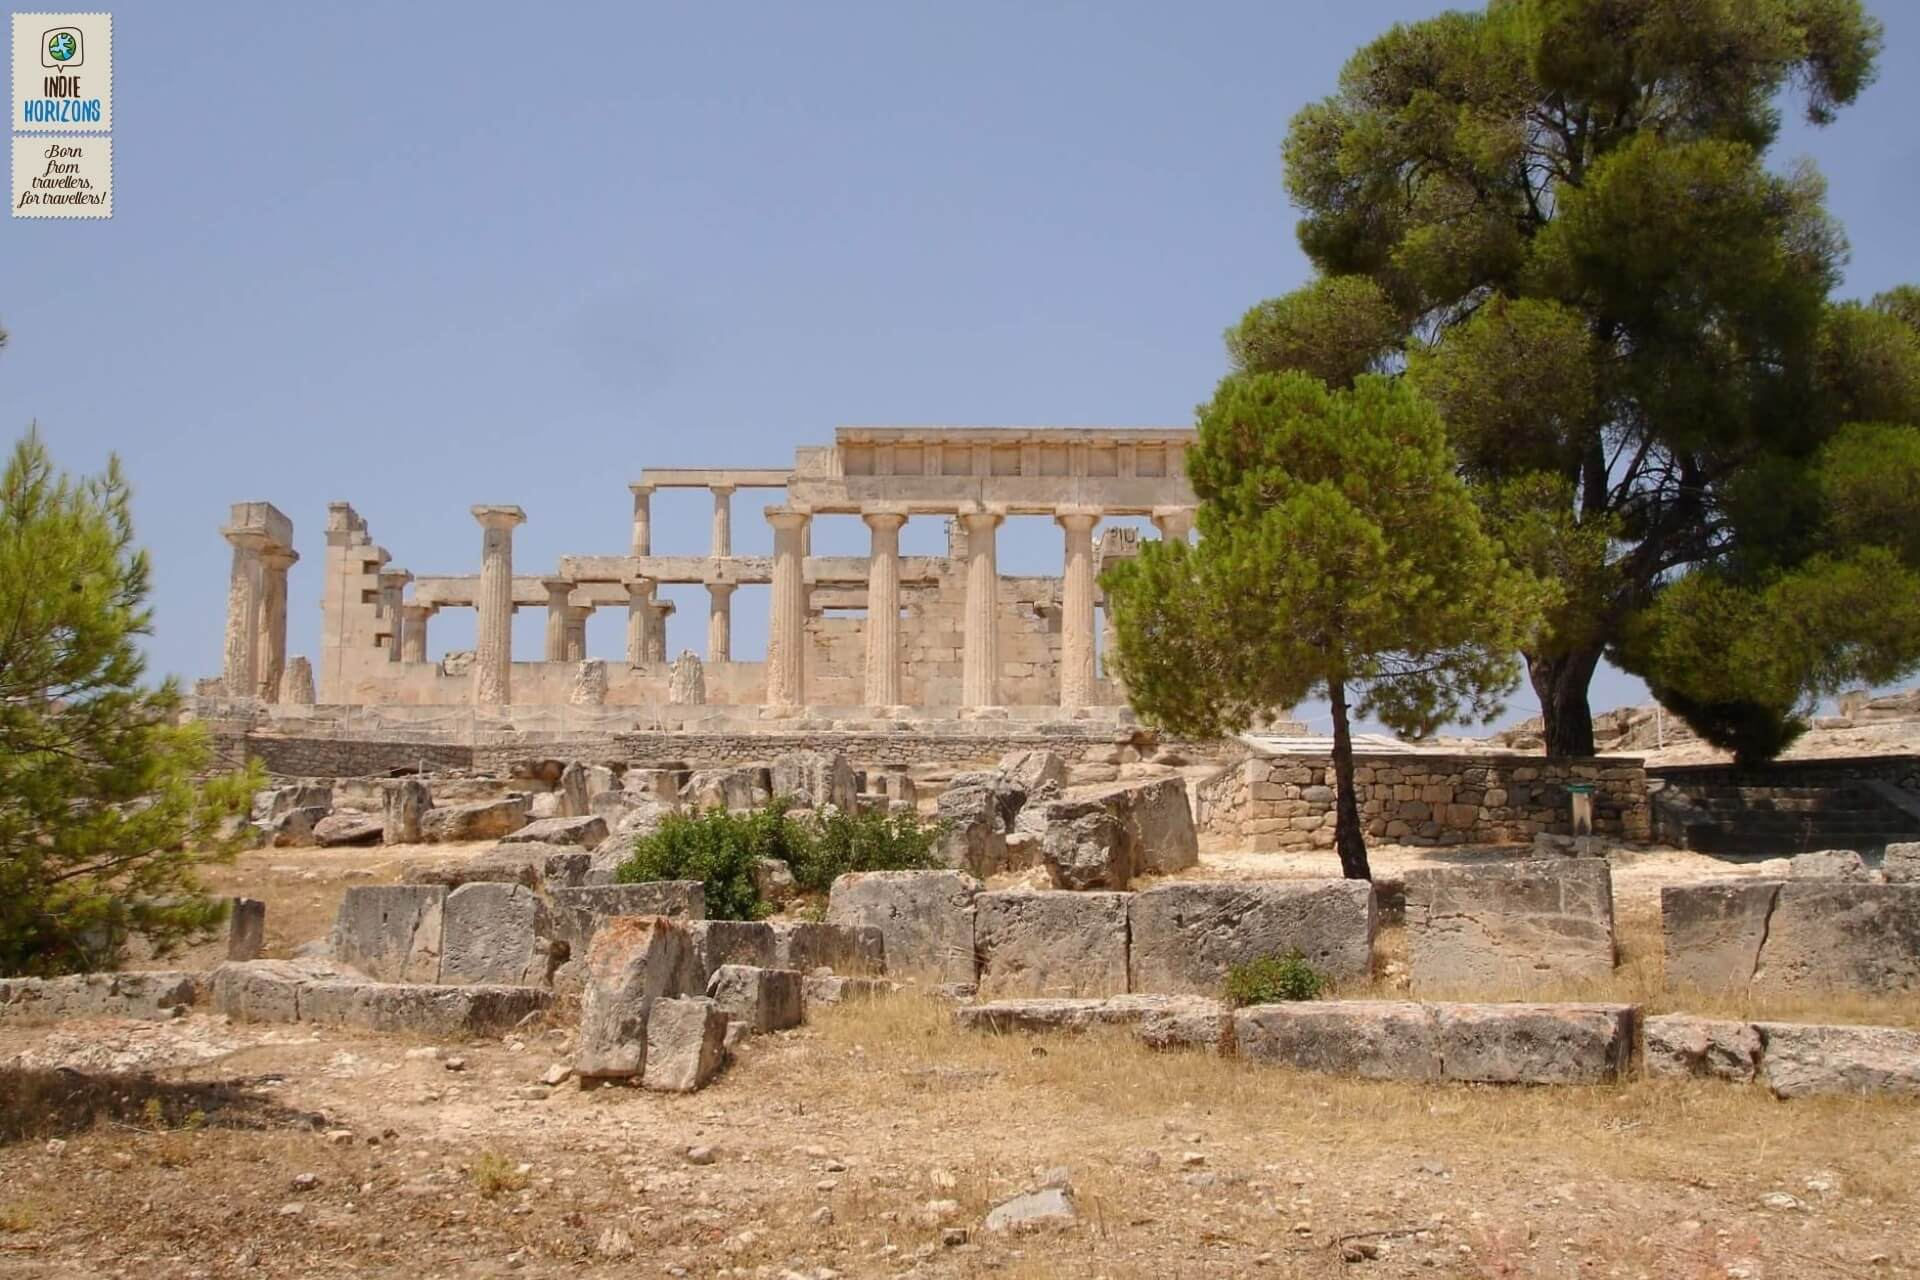 Visit the Temple of Aphaia, one of the most important sanctuaries of Attica.